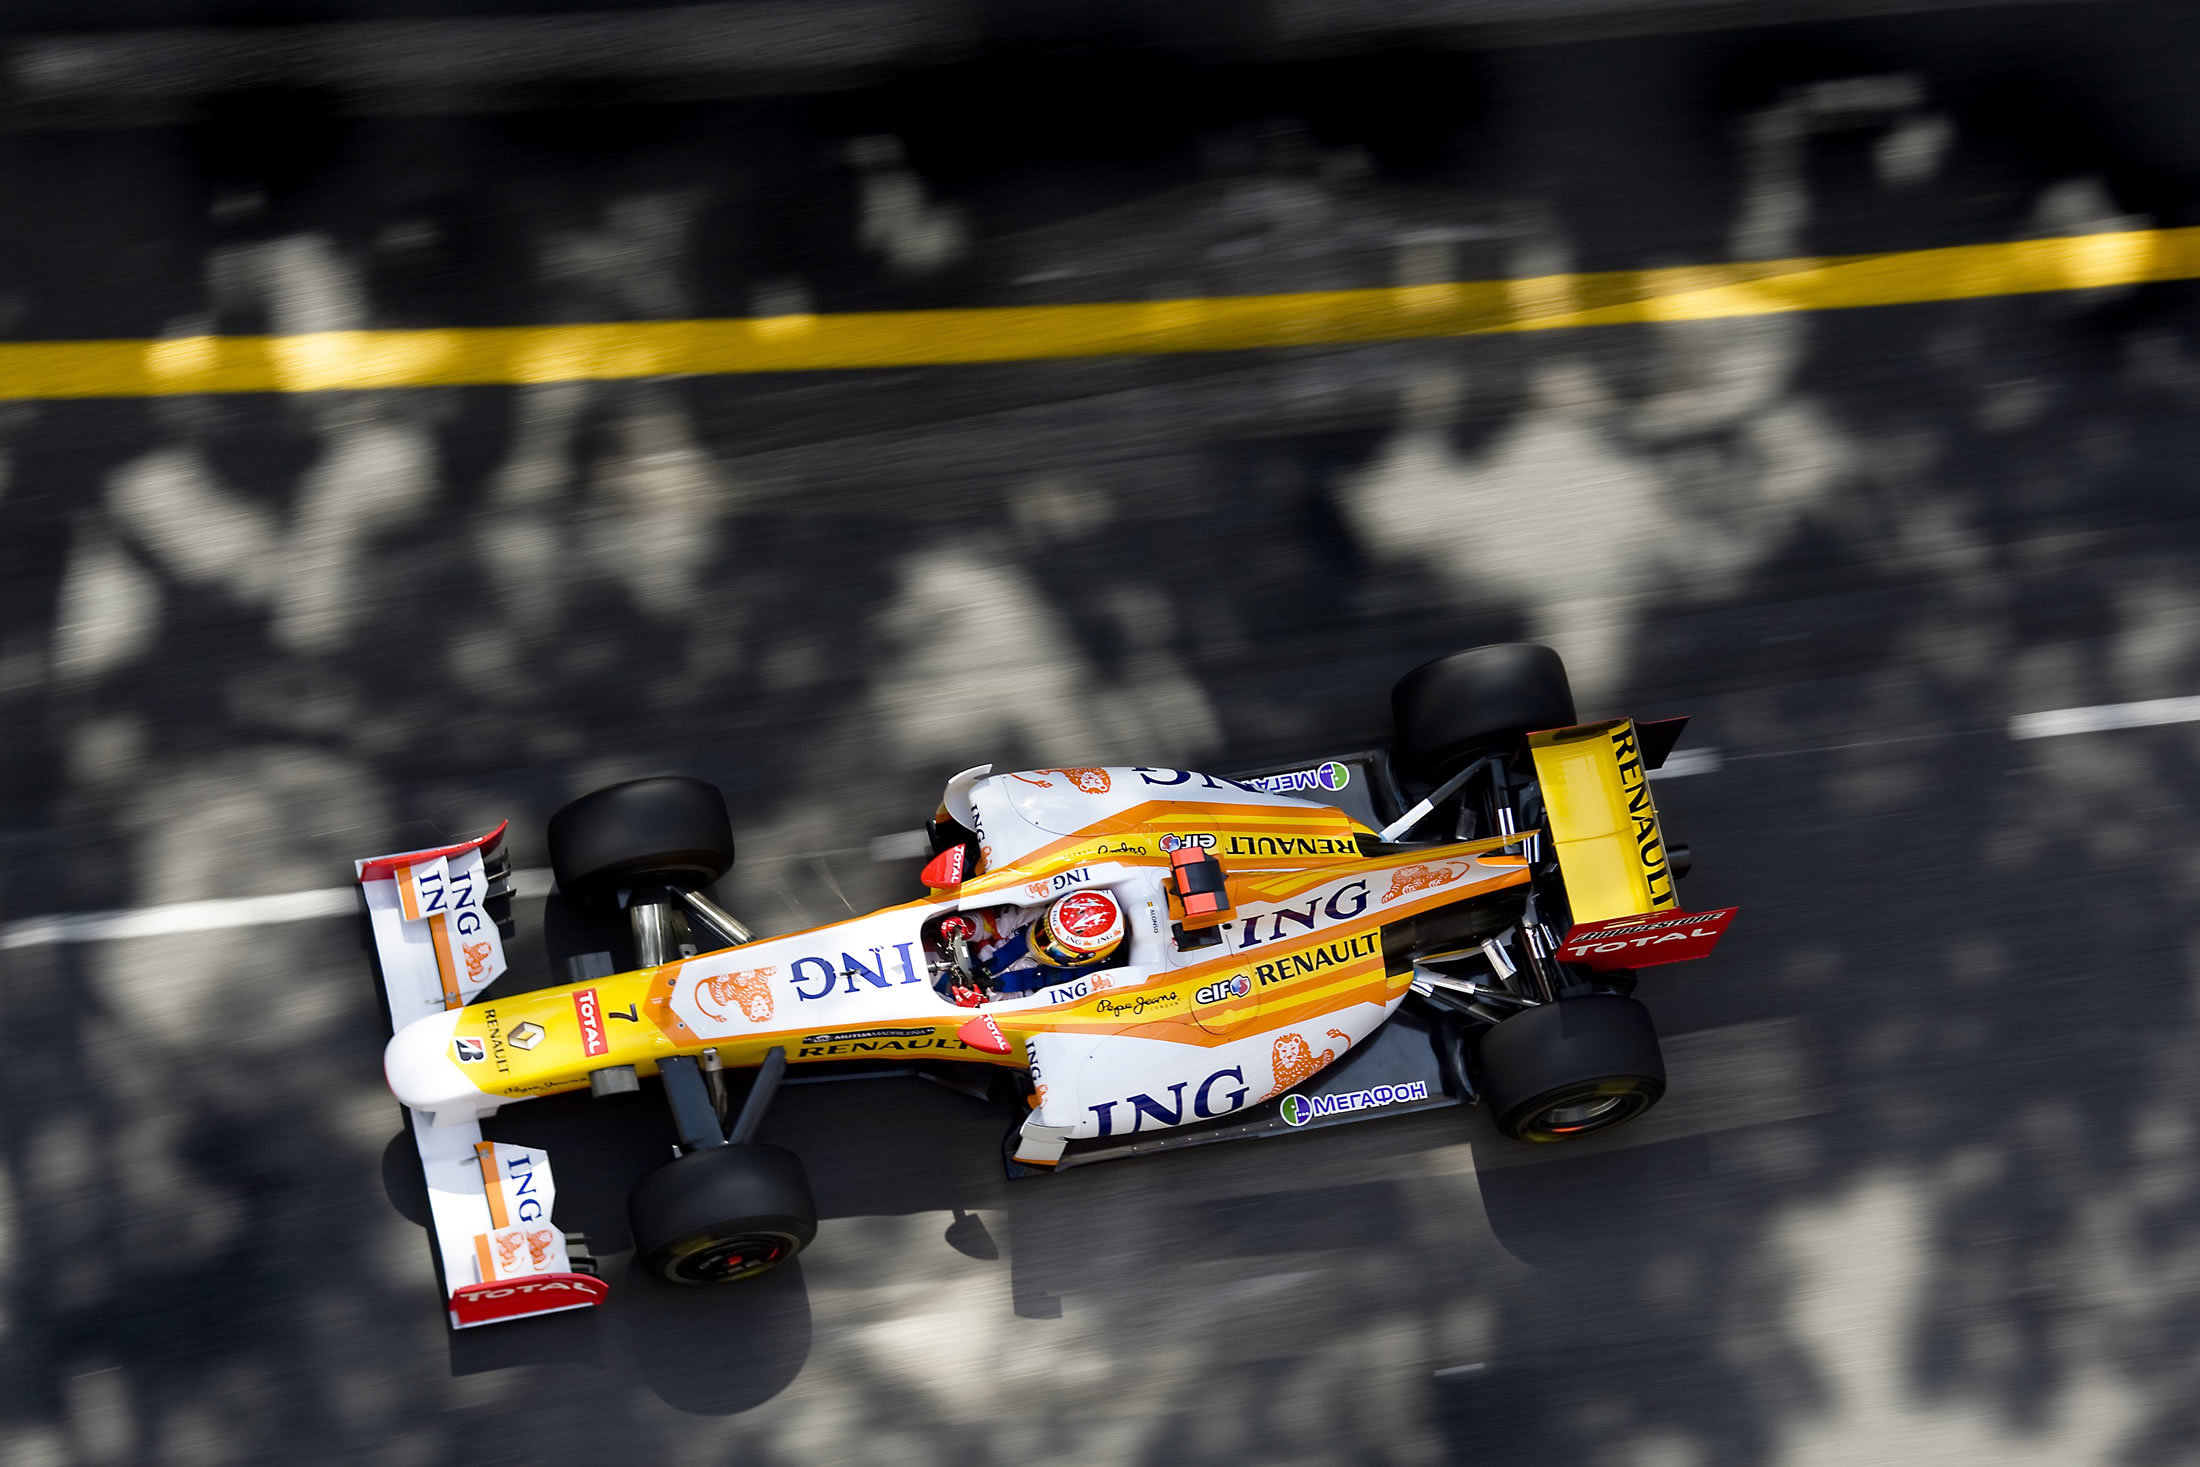 formula one Renault racing HD Wallpaper